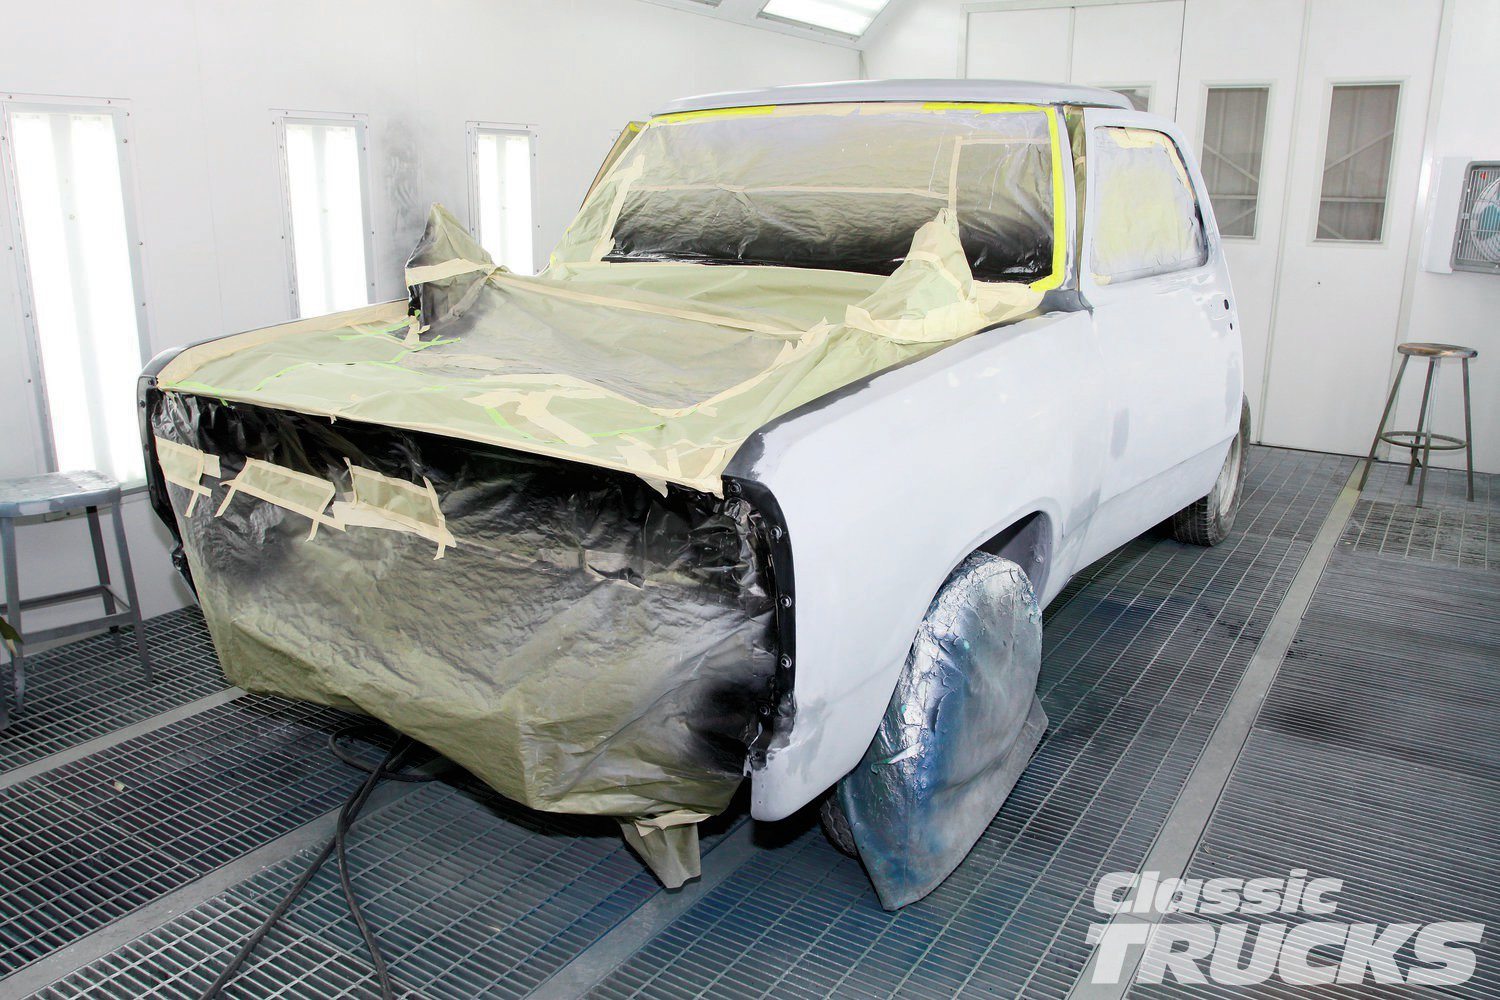 2. Still in original paint RCC autobody students sanded most of the dark blue to bare metal. After cleansing with prep solvent, Summit Racing DTM epoxy SUM-UP230 went on. DTM means direct-to-metal. Wait around 24-48 hours before sanding.